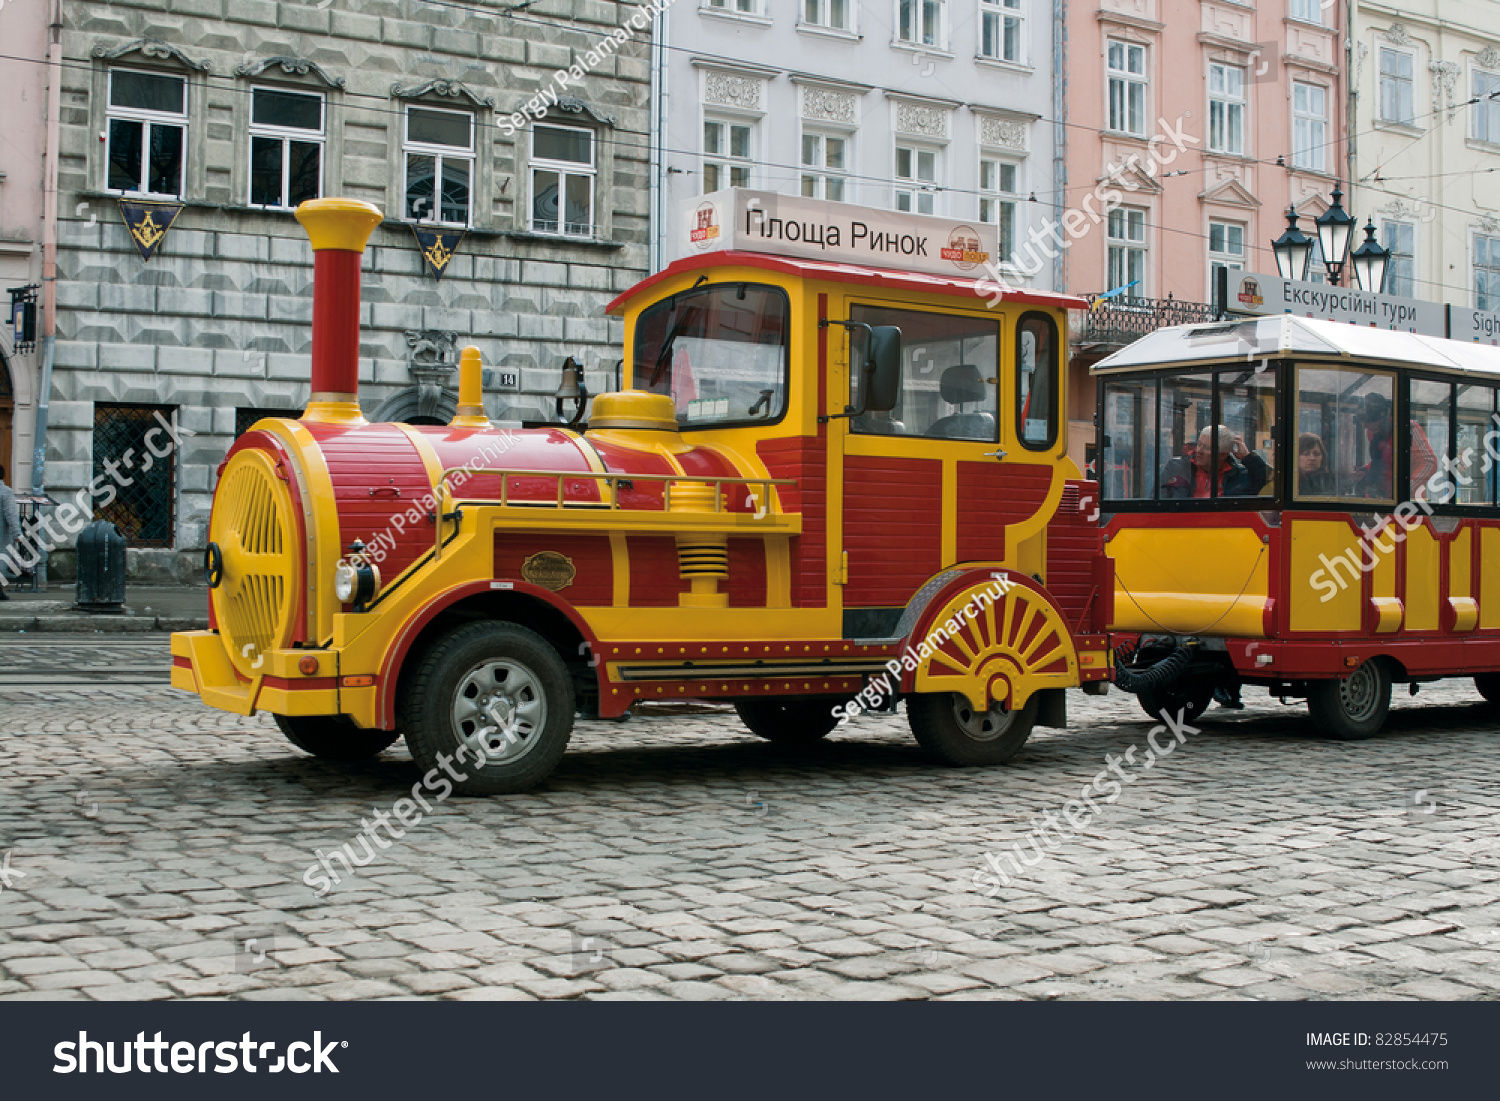 Tow trucks in Lviv region: a selection of sites